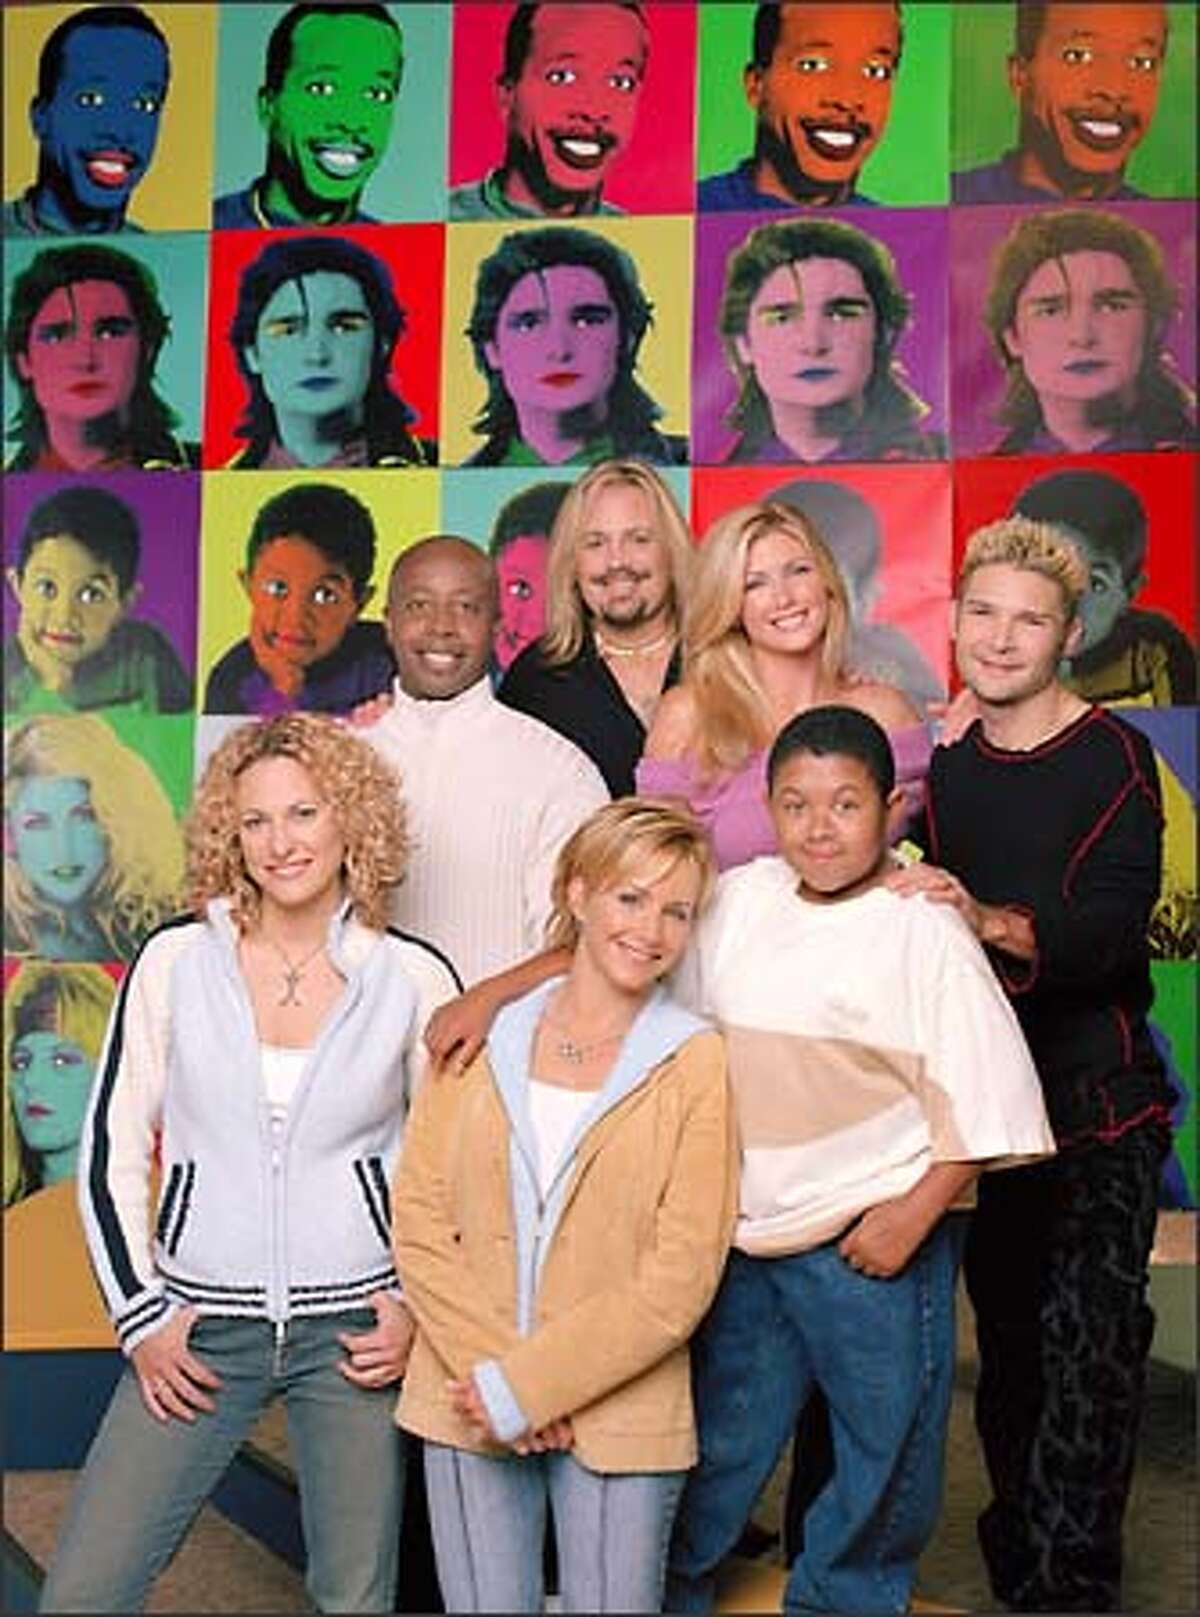 Do you remember all these people? The cast of The WB's